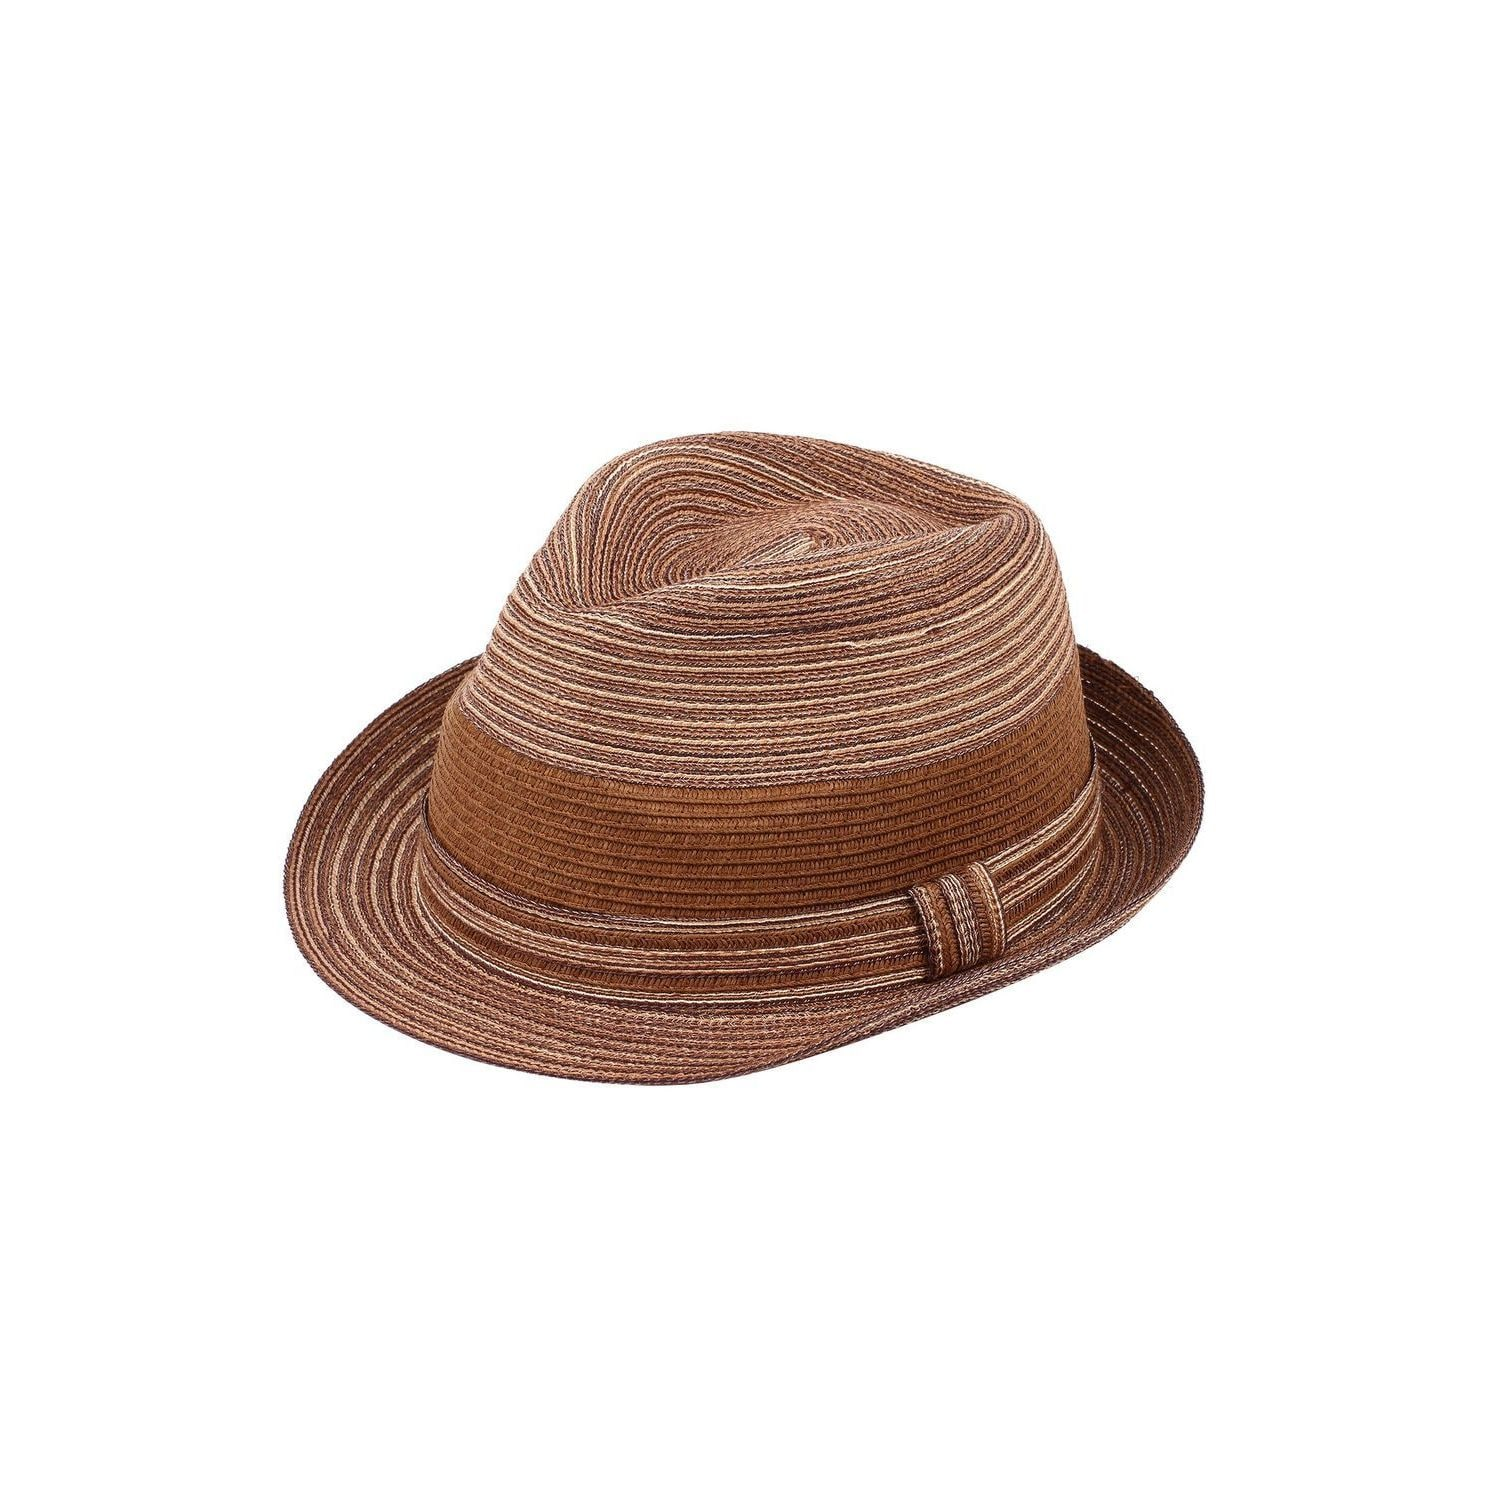 bdc6b3505b93b4 Shop Zodaca Women's Sun Styles Rosie Ladies Modern Trilby Fedora Hat Beach  Adjustable Foldable Sun Hats (14 Colors Available) - Free Shipping On  Orders Over ...